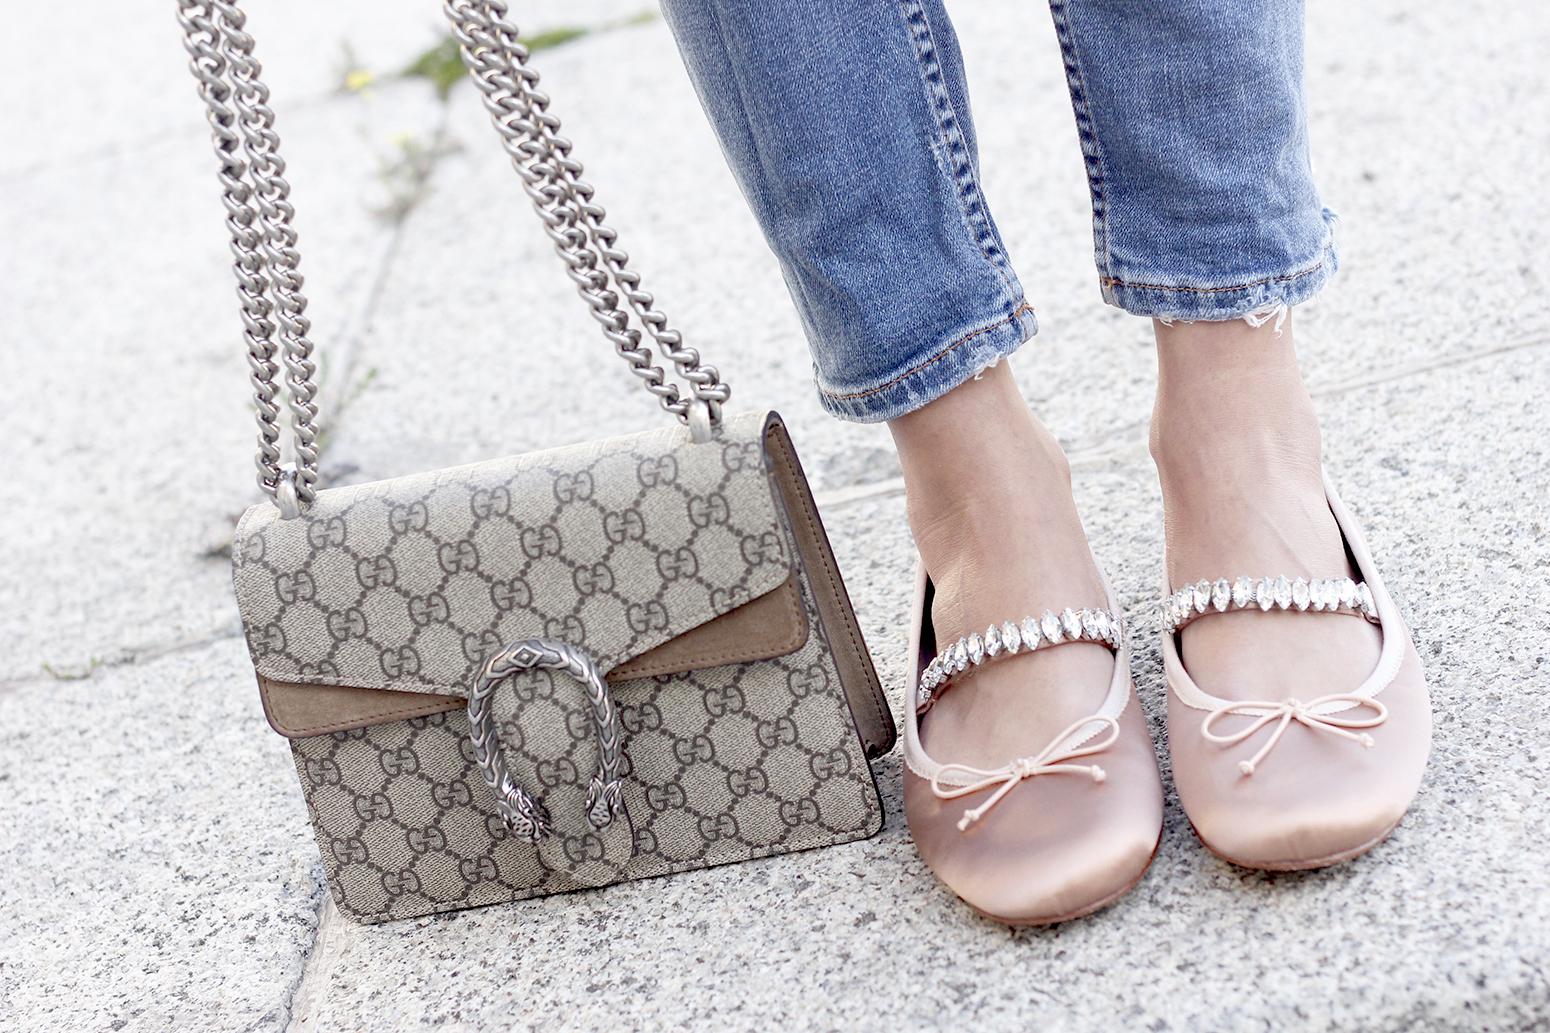 ripped keans gucci bag Jewel ballerinas uterqüe white blouse outfit style fashion07